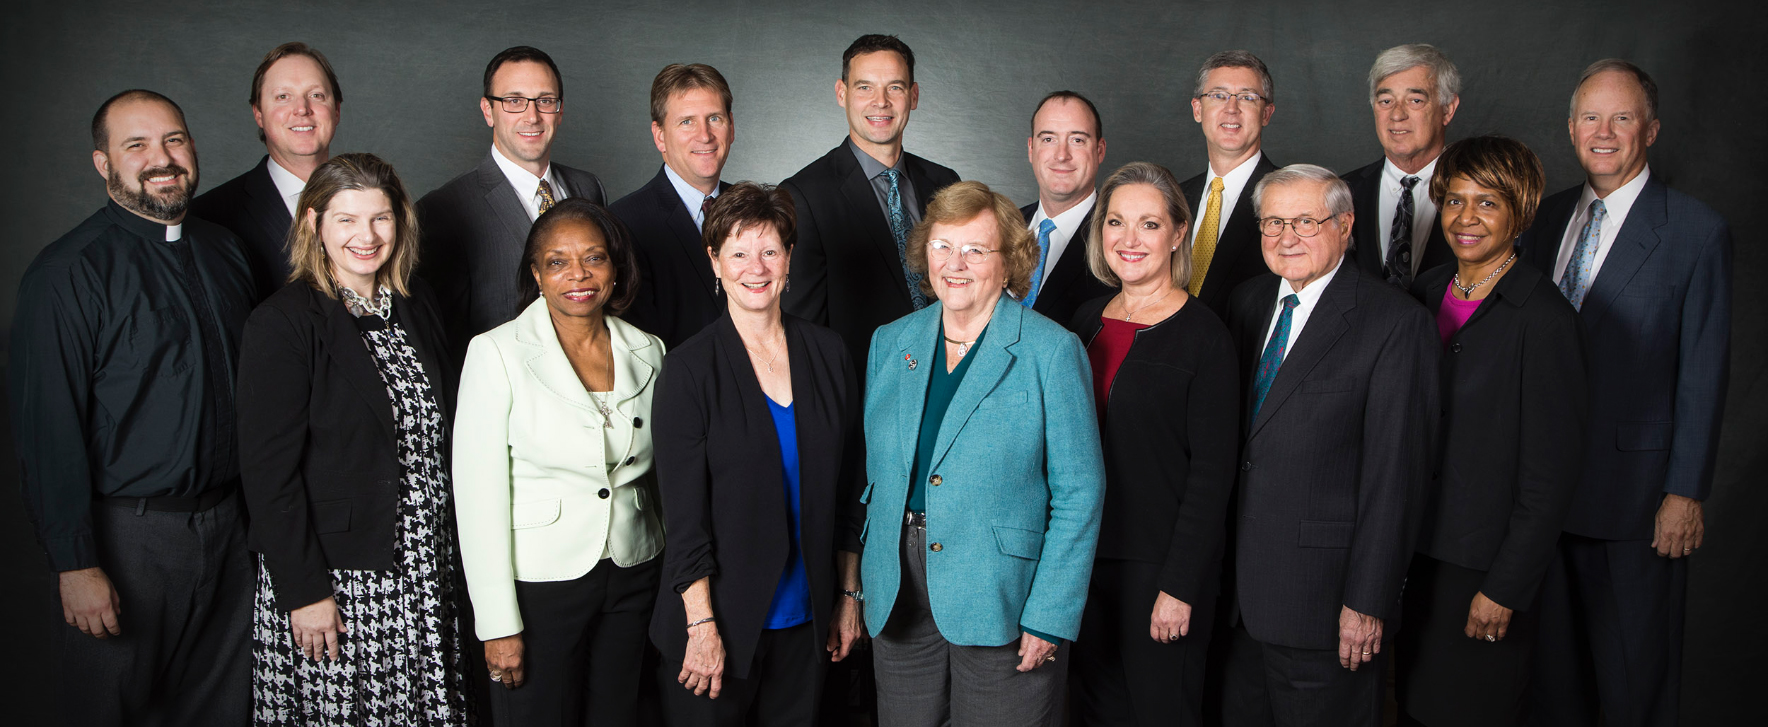 Portrait of Graceworks Board of Directors